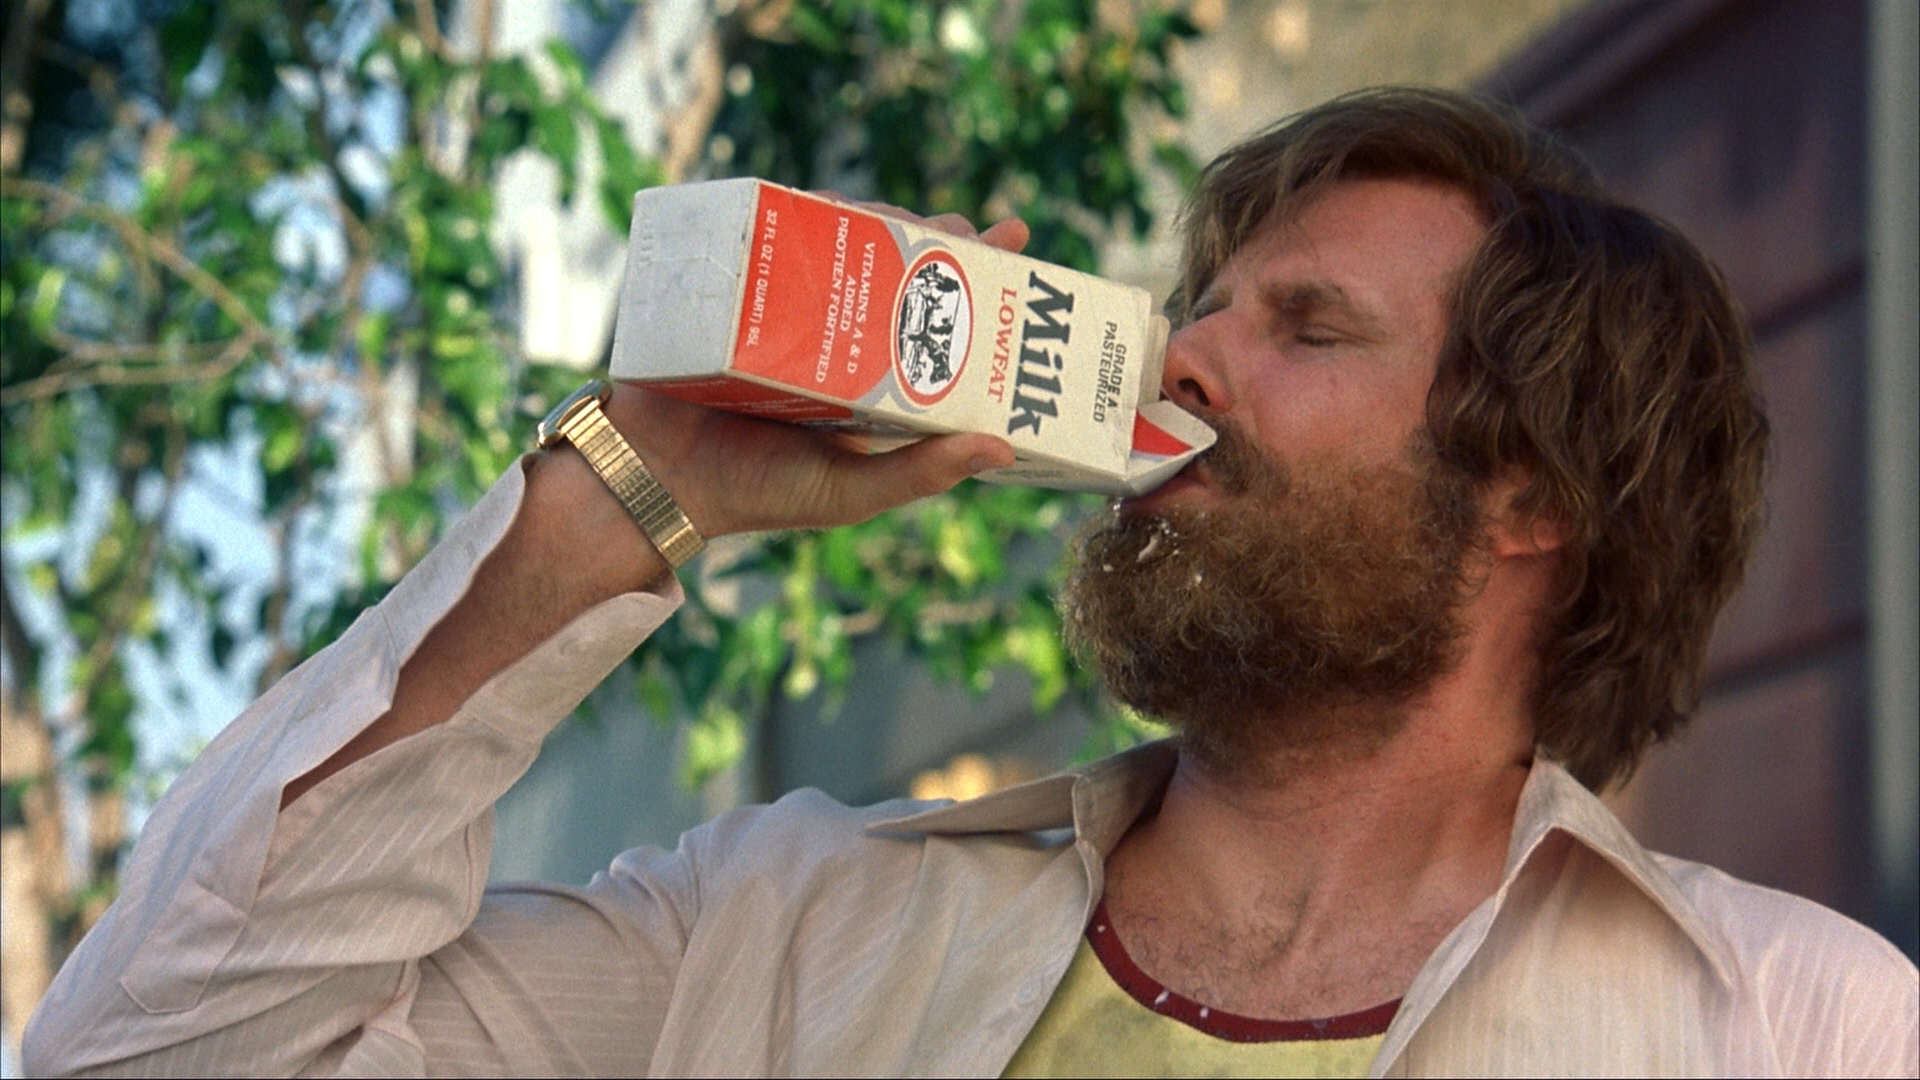 Mr Burgundy immediately regretted his decision to drink milk.